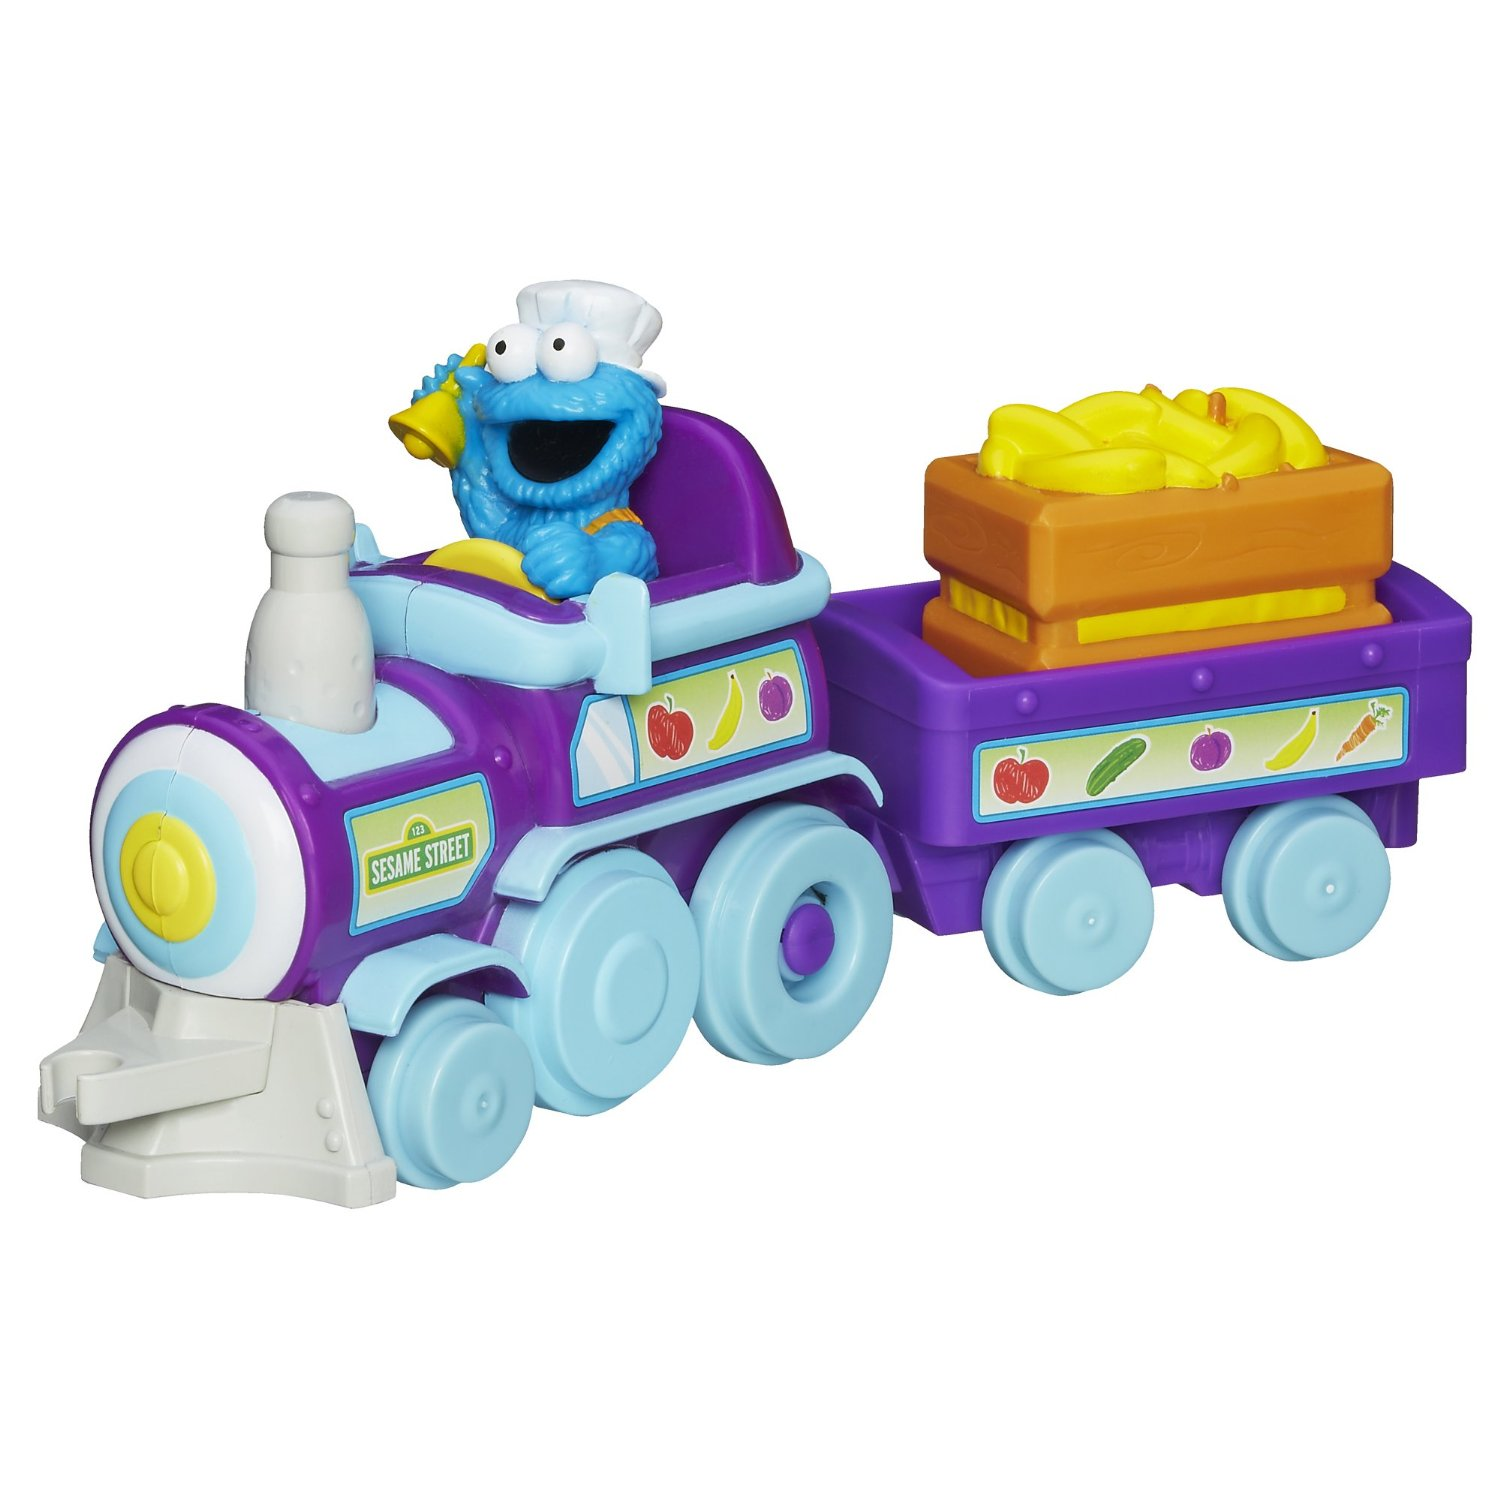 Playskool Toy Food : Sesame street toys cookie monster food train at toystop